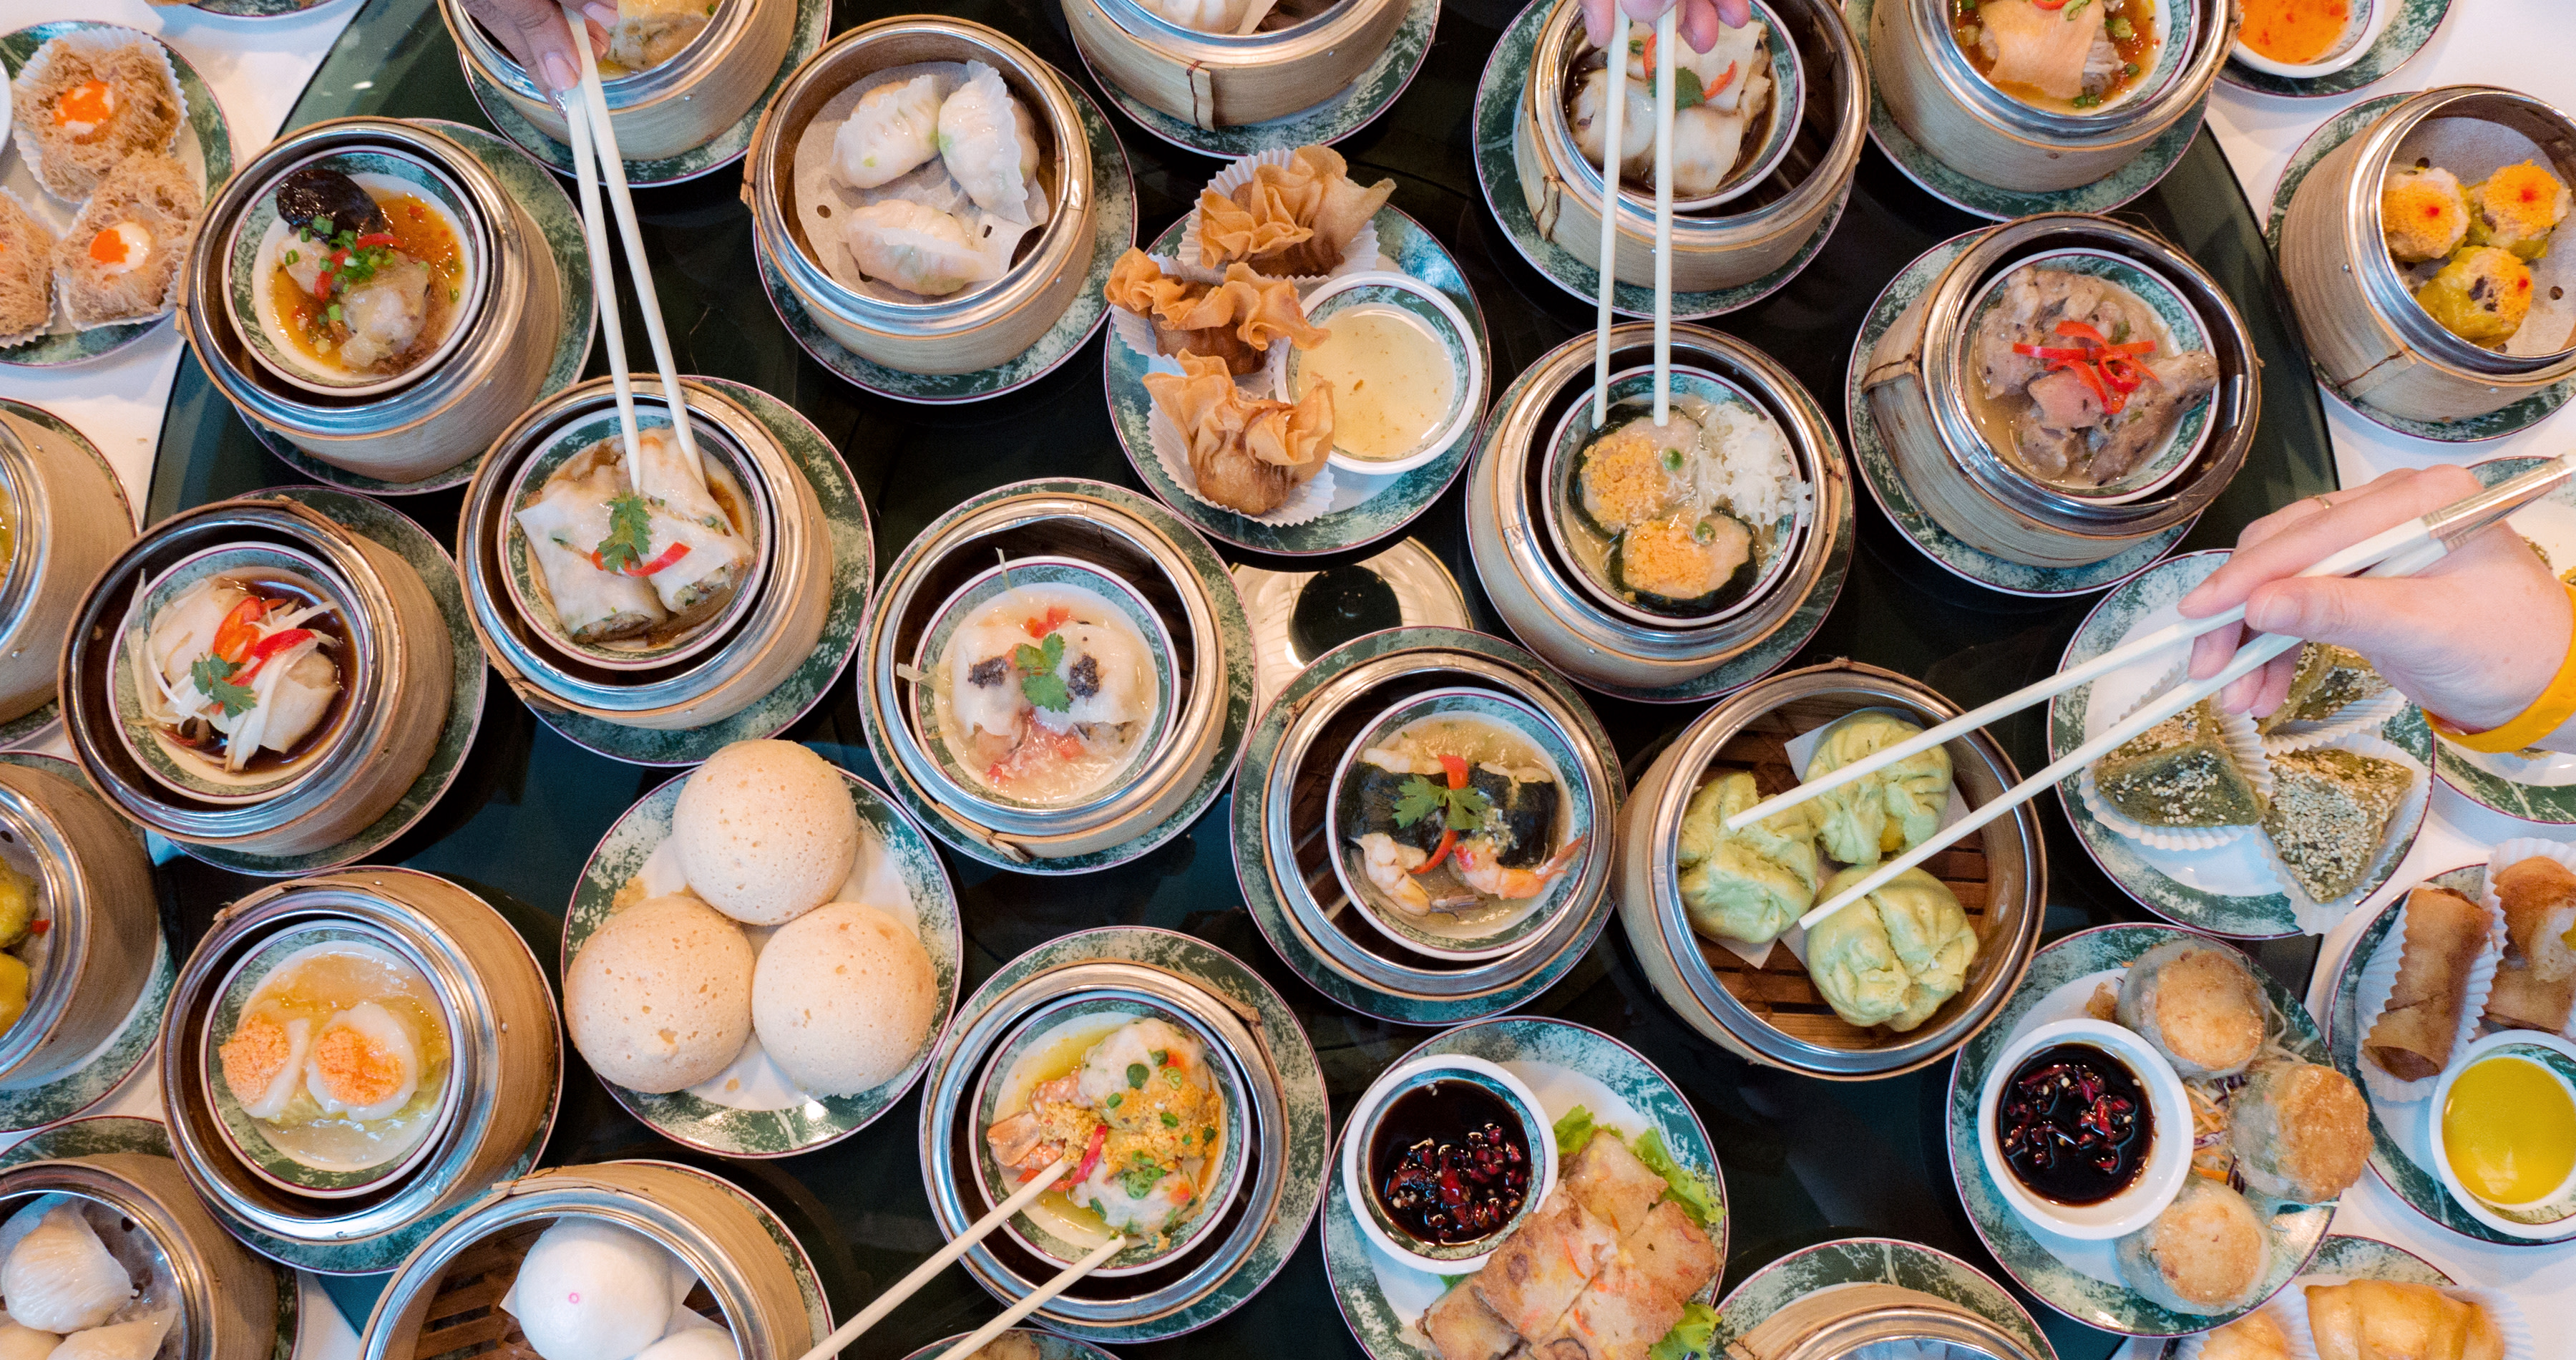 Hong Kong Food culture makes it to our Top 10 food destinations